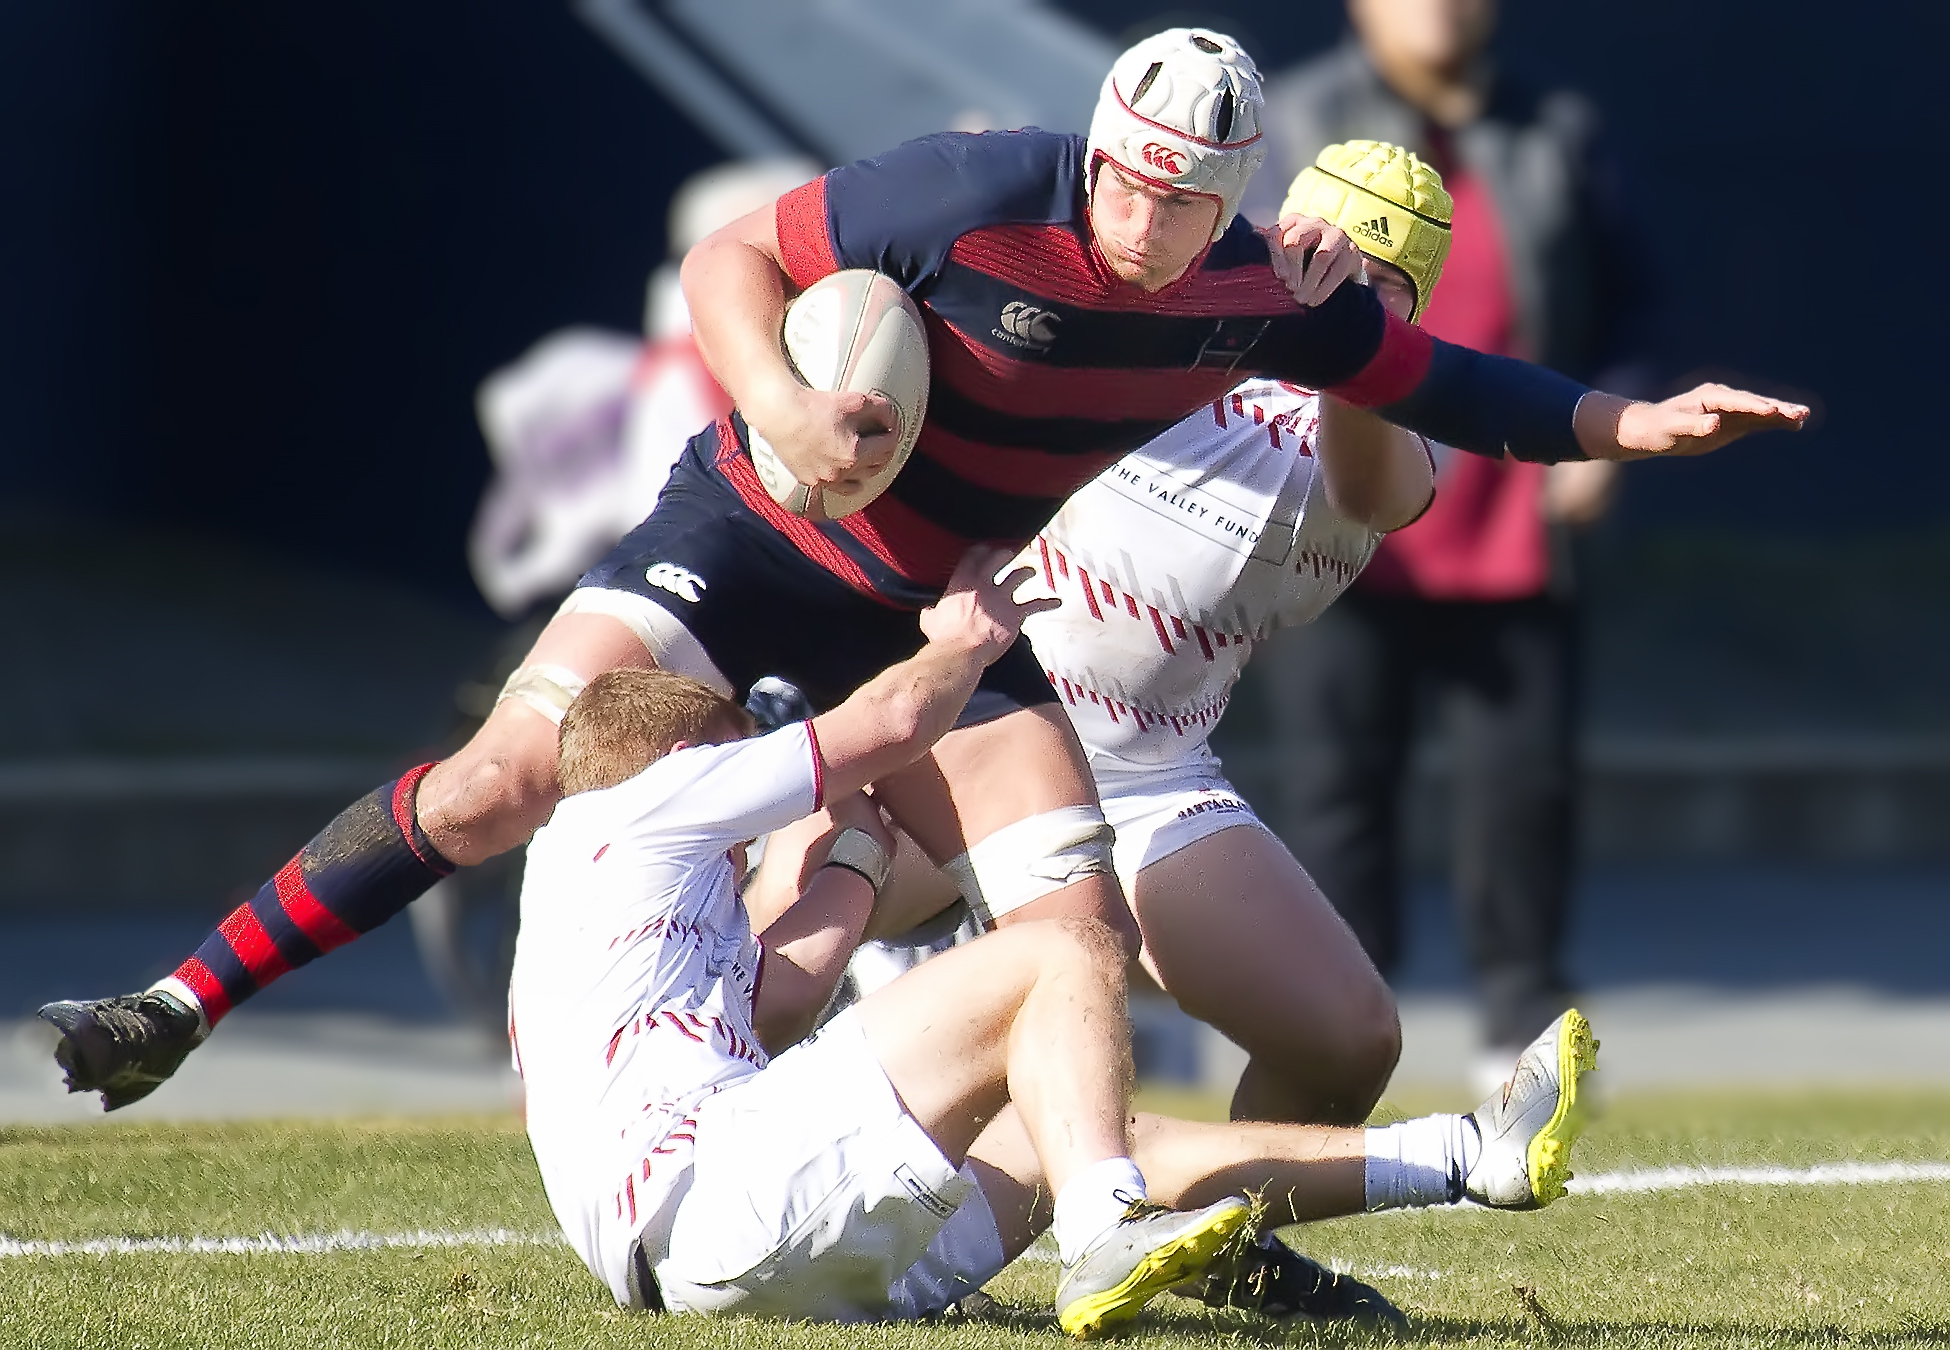 Saint Mary's rugby v Santa Clara Jan 28 2017. Michael Geib photo.